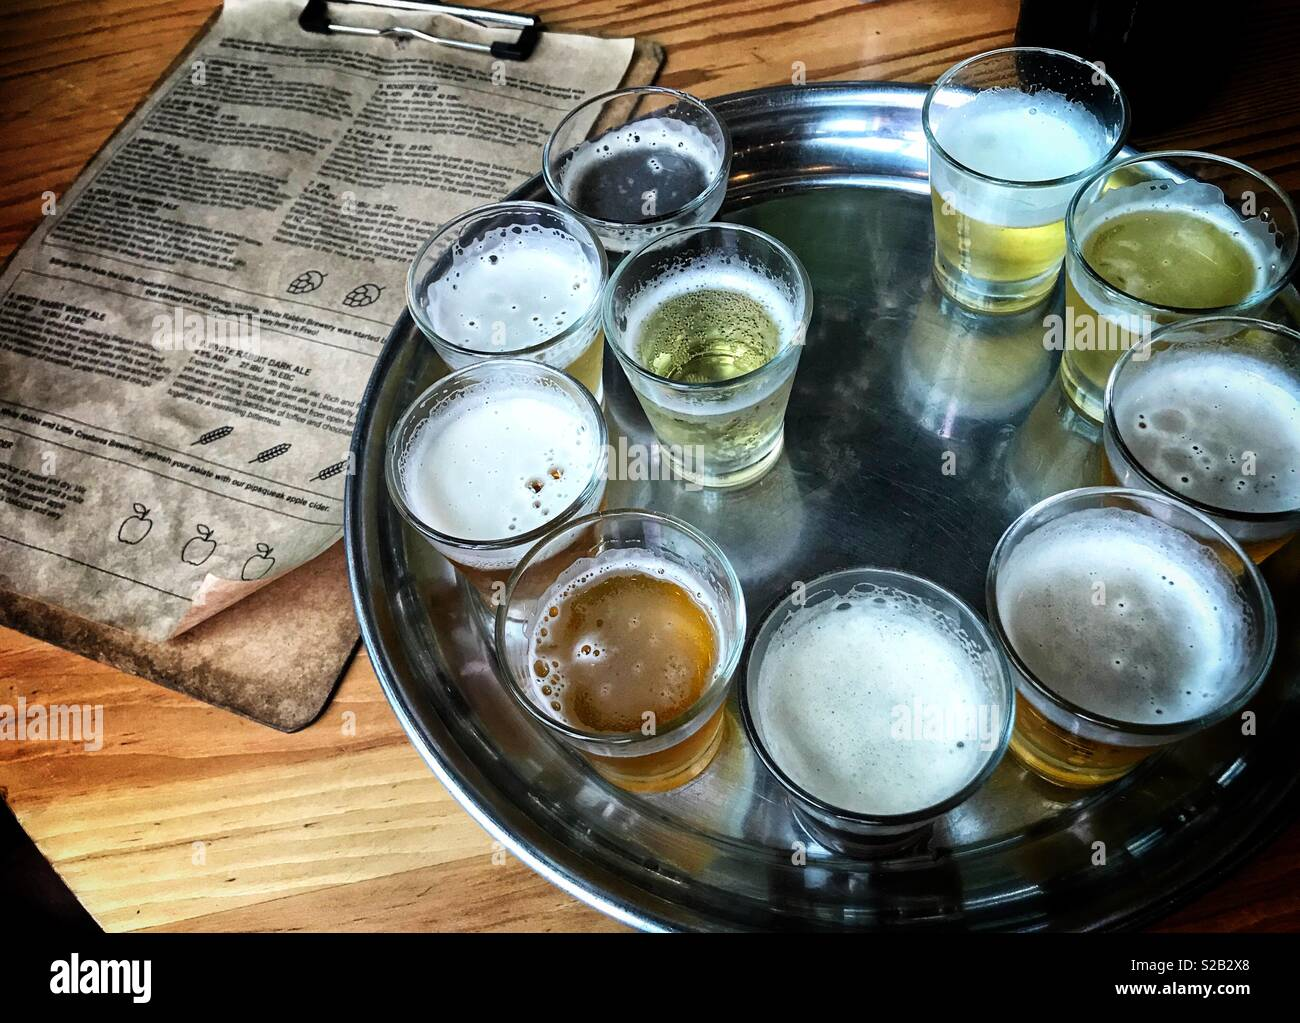 Beer tasting - Stock Image